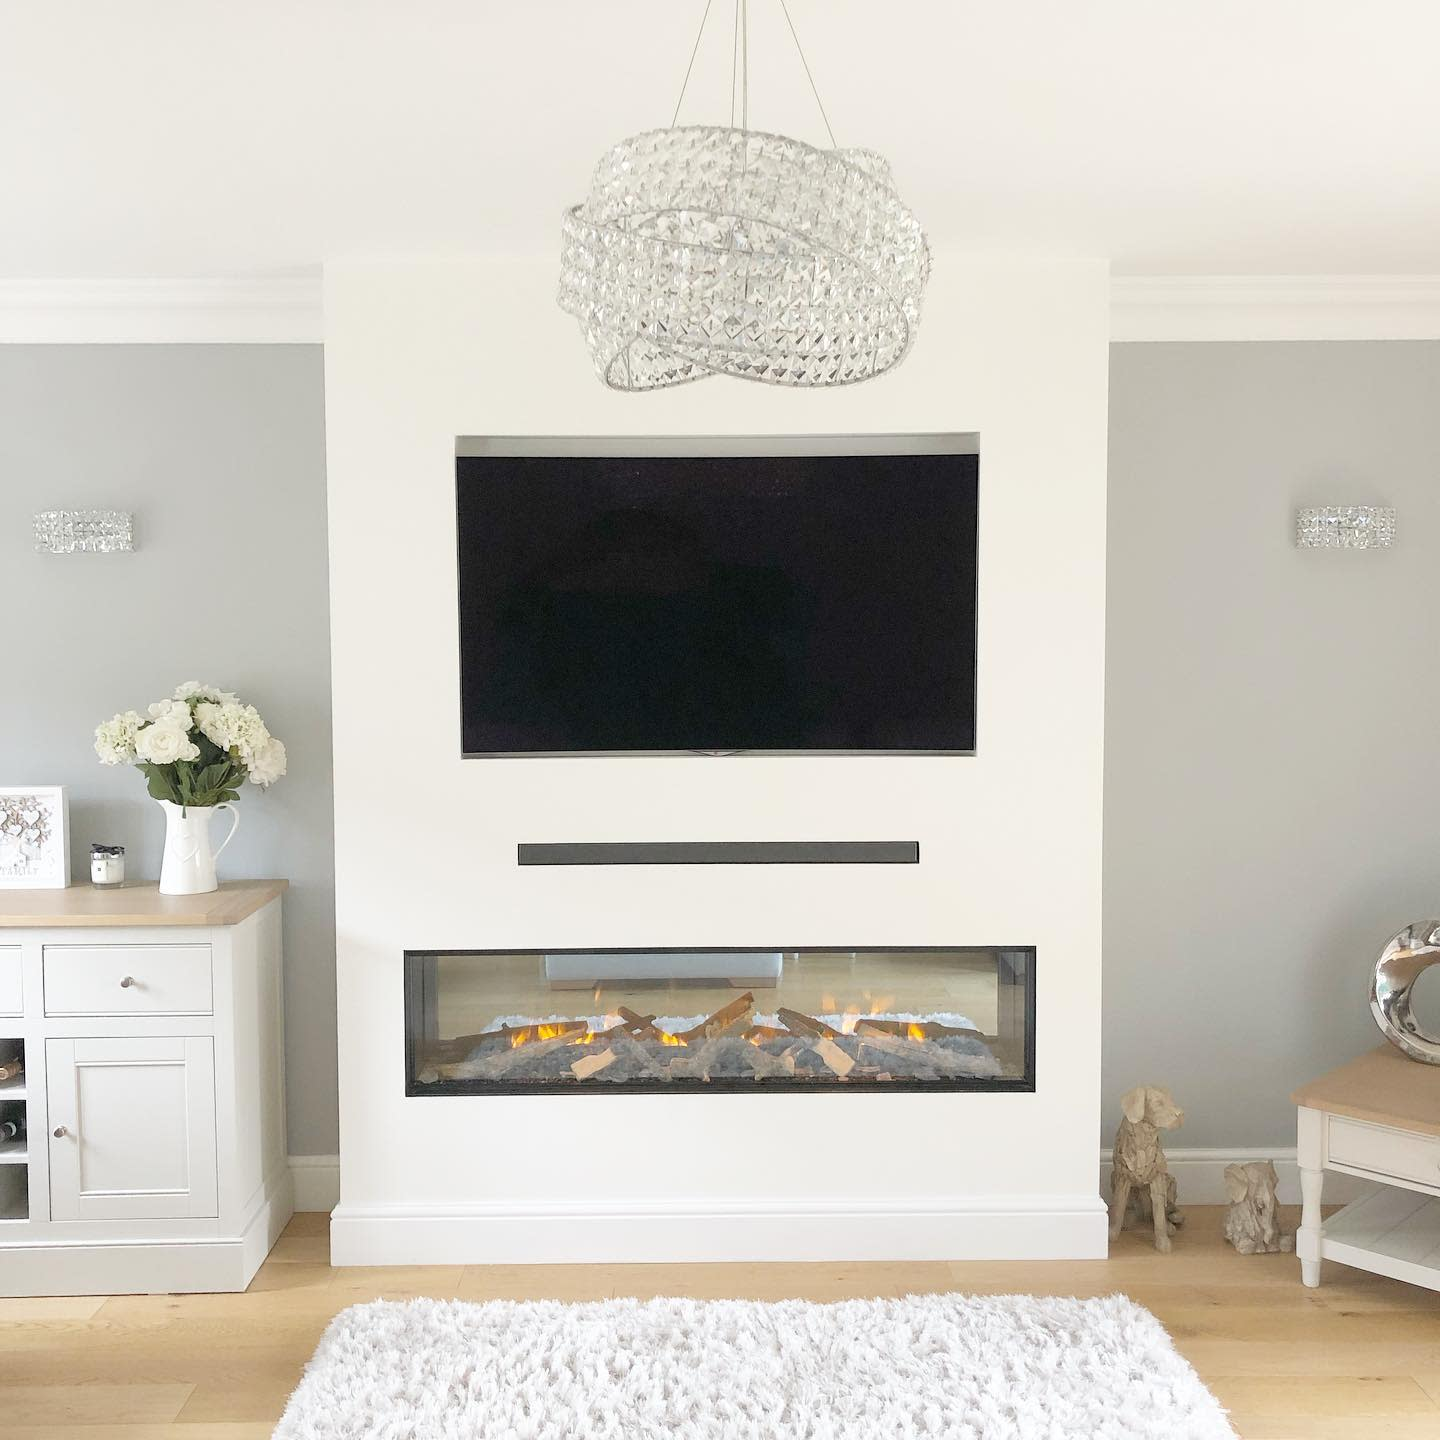 Fireplace Wall Ideas With TV -mother_daughter.interiors